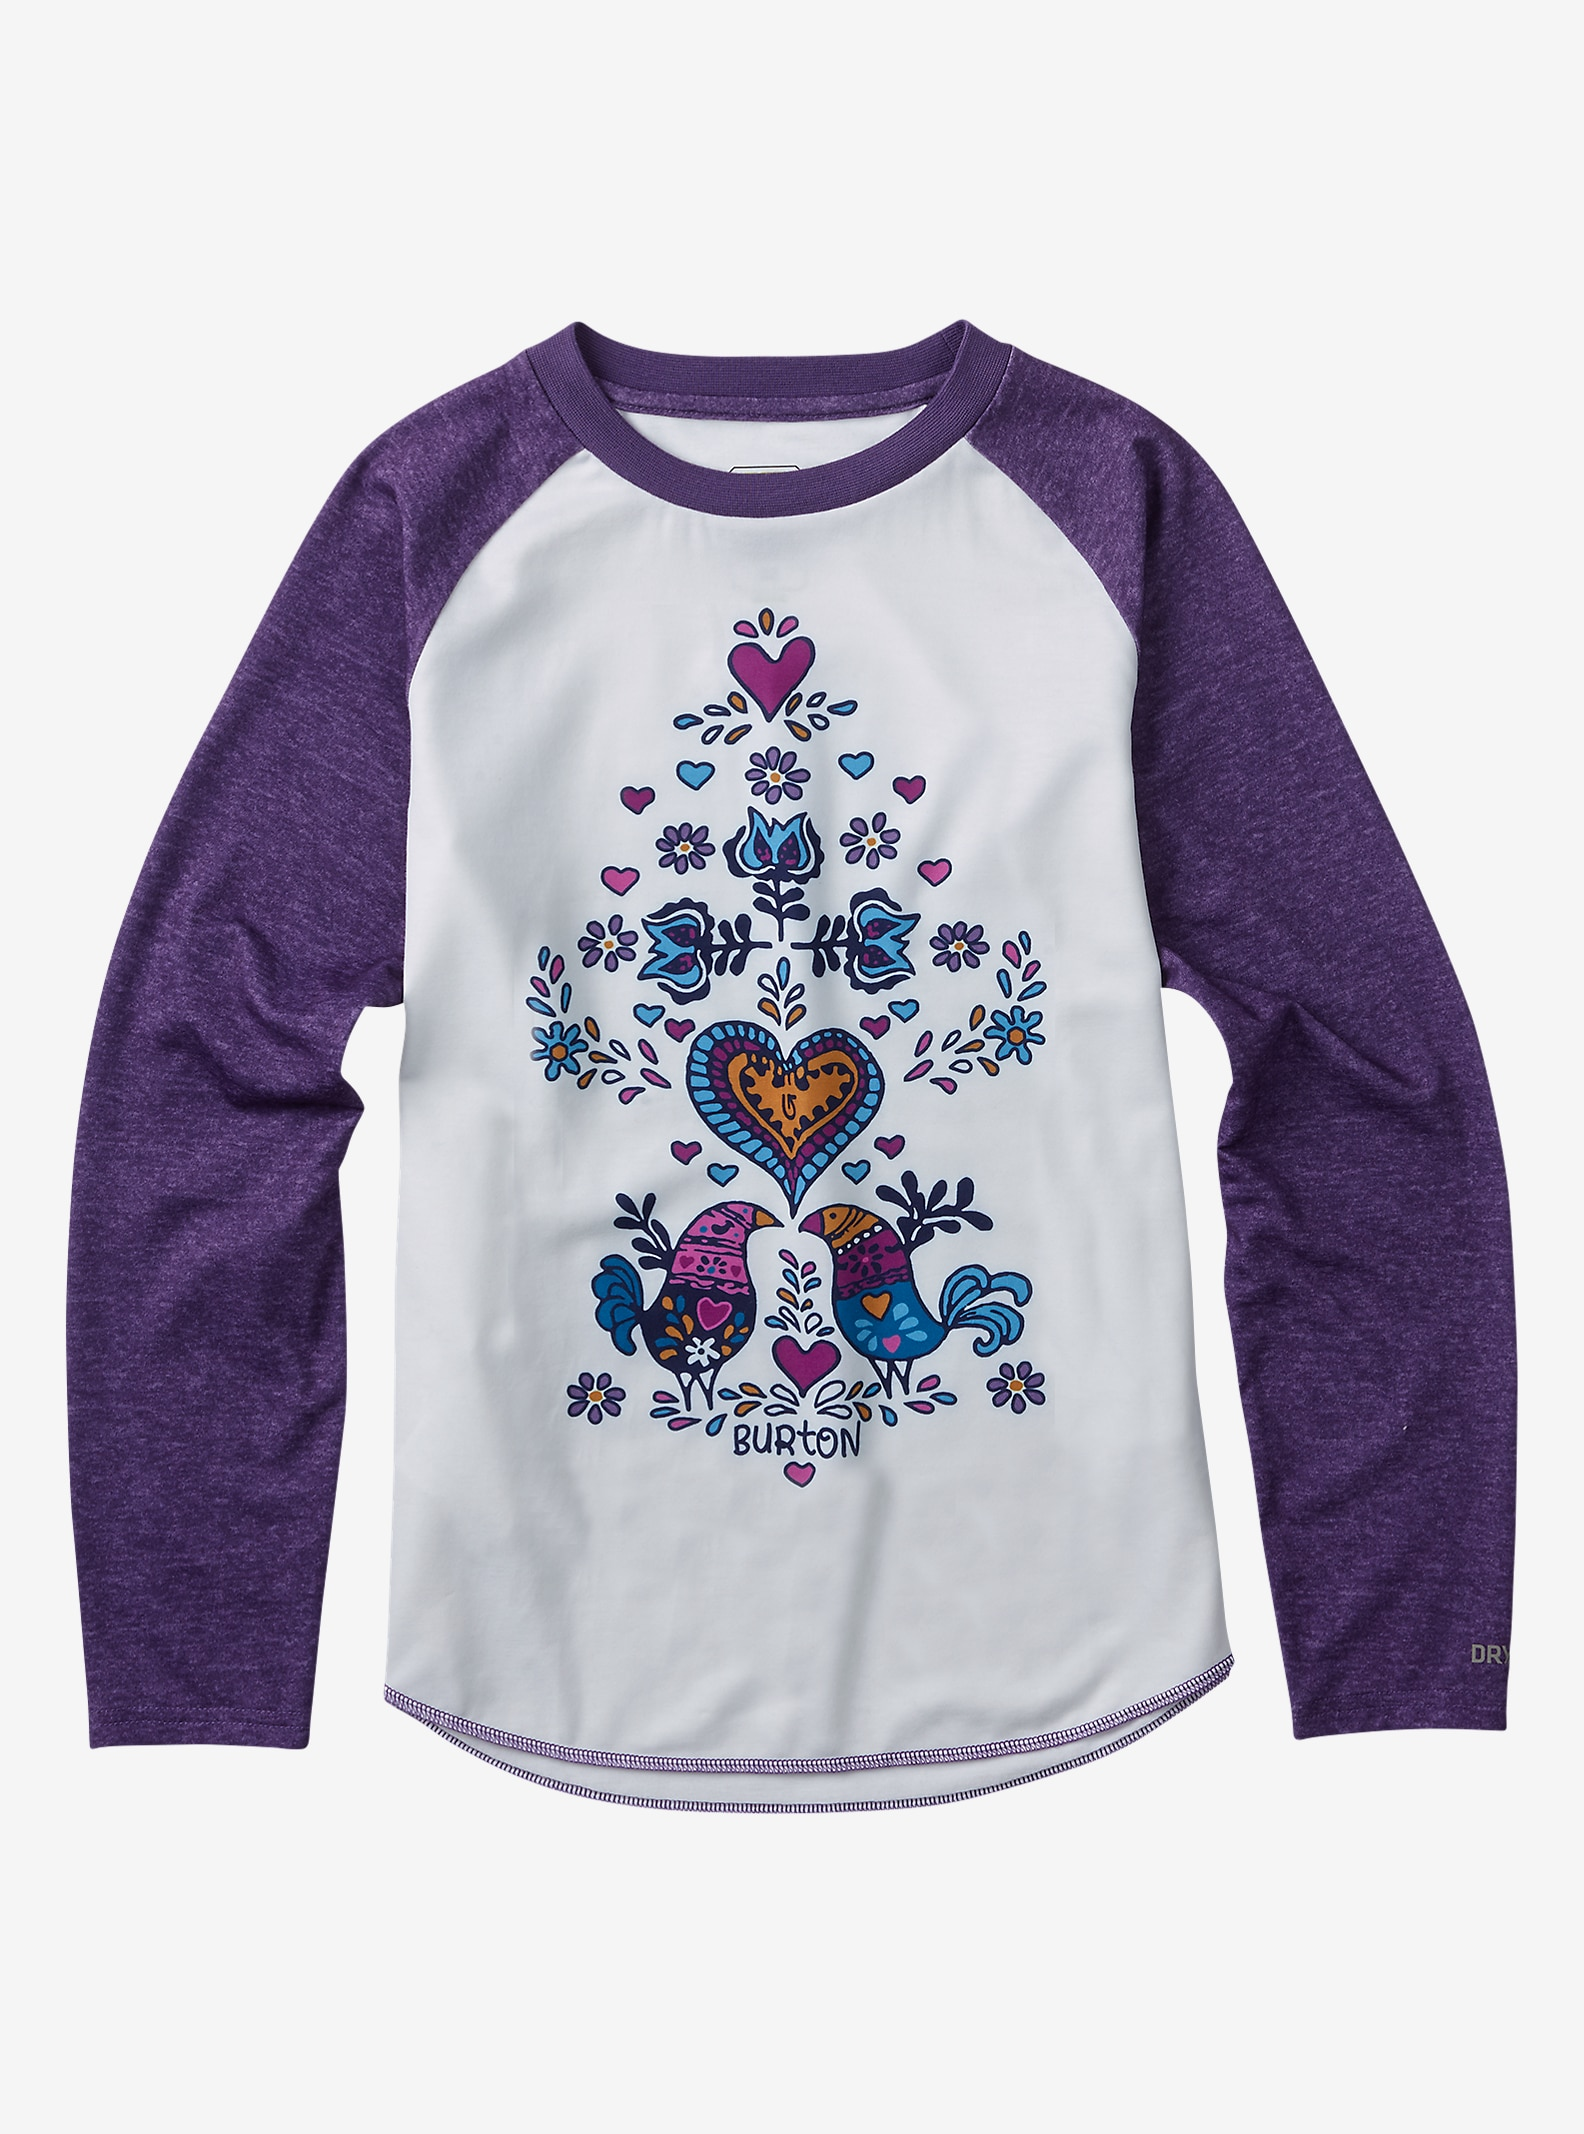 Burton Kids' Base Layer Tech Tee shown in Hippie Girl